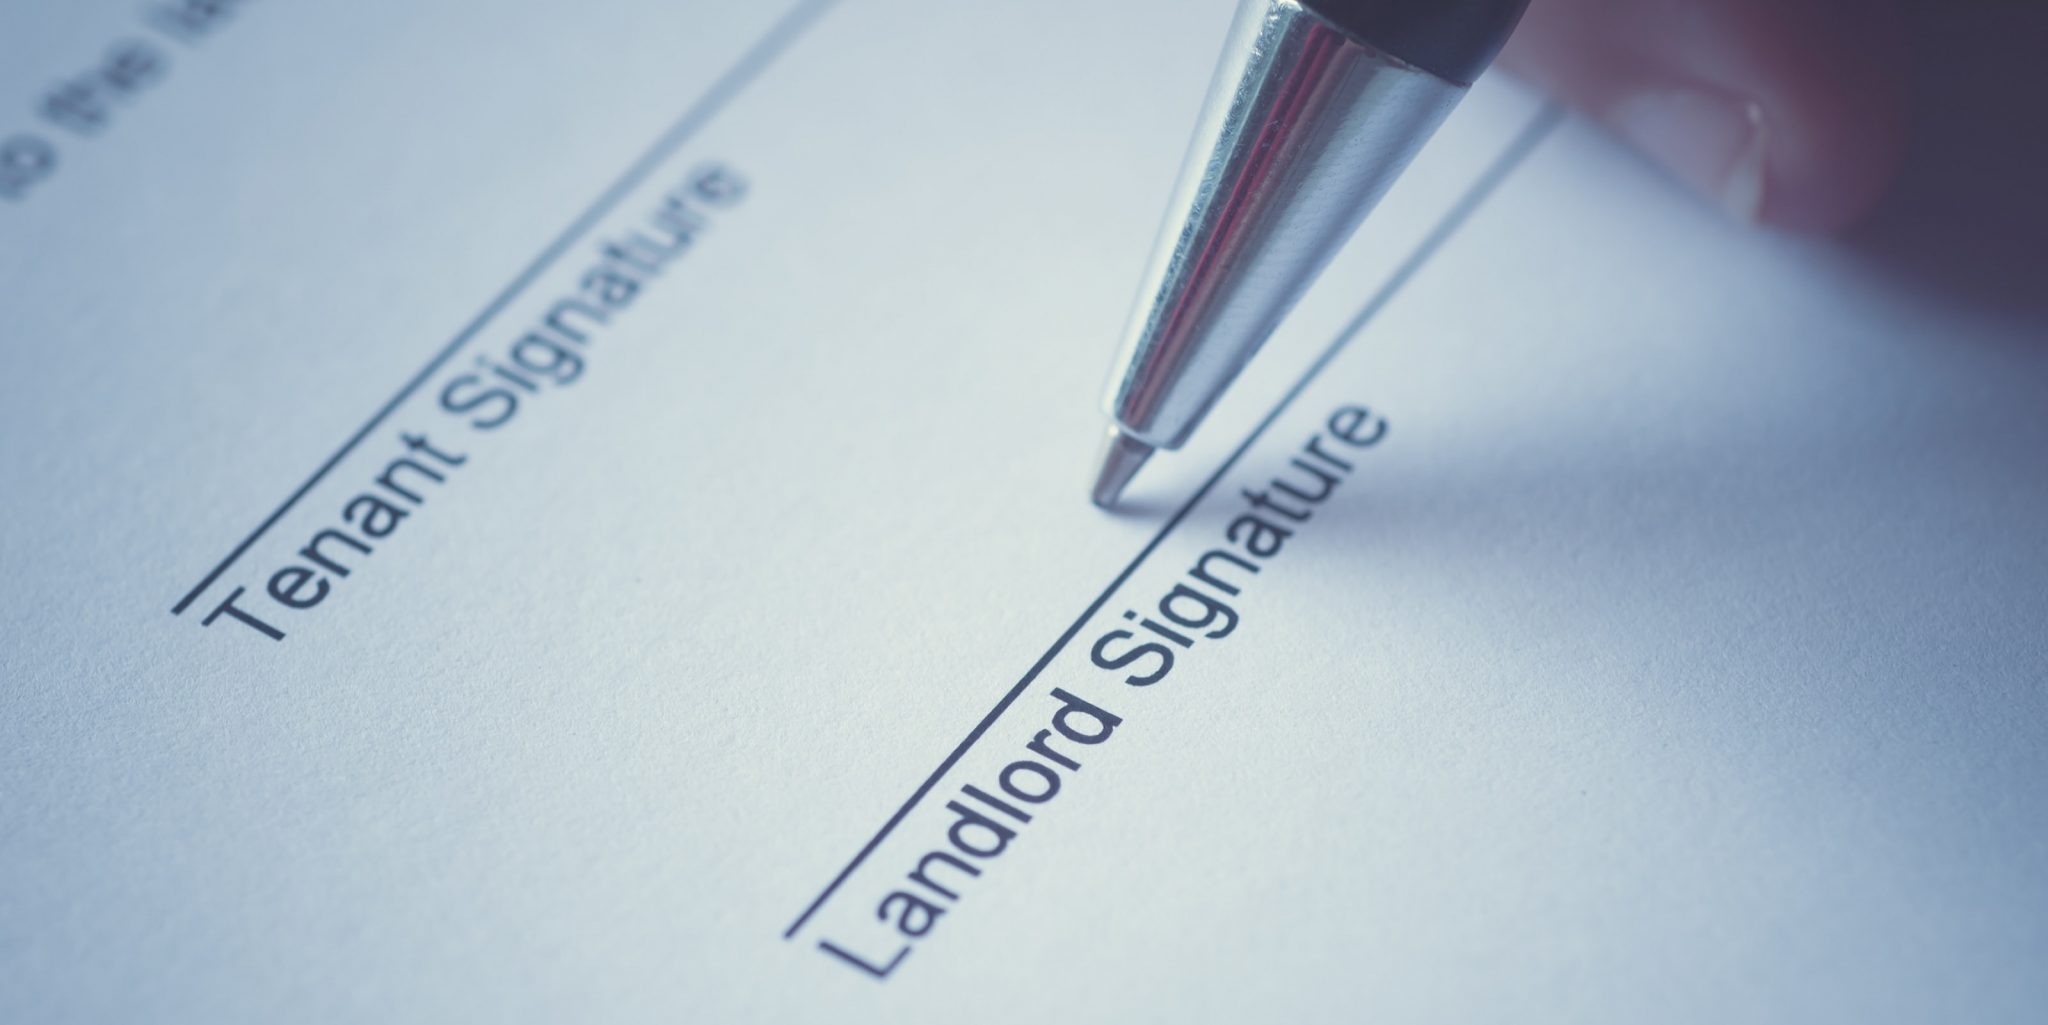 Landlord and Tenant Signature lines on form